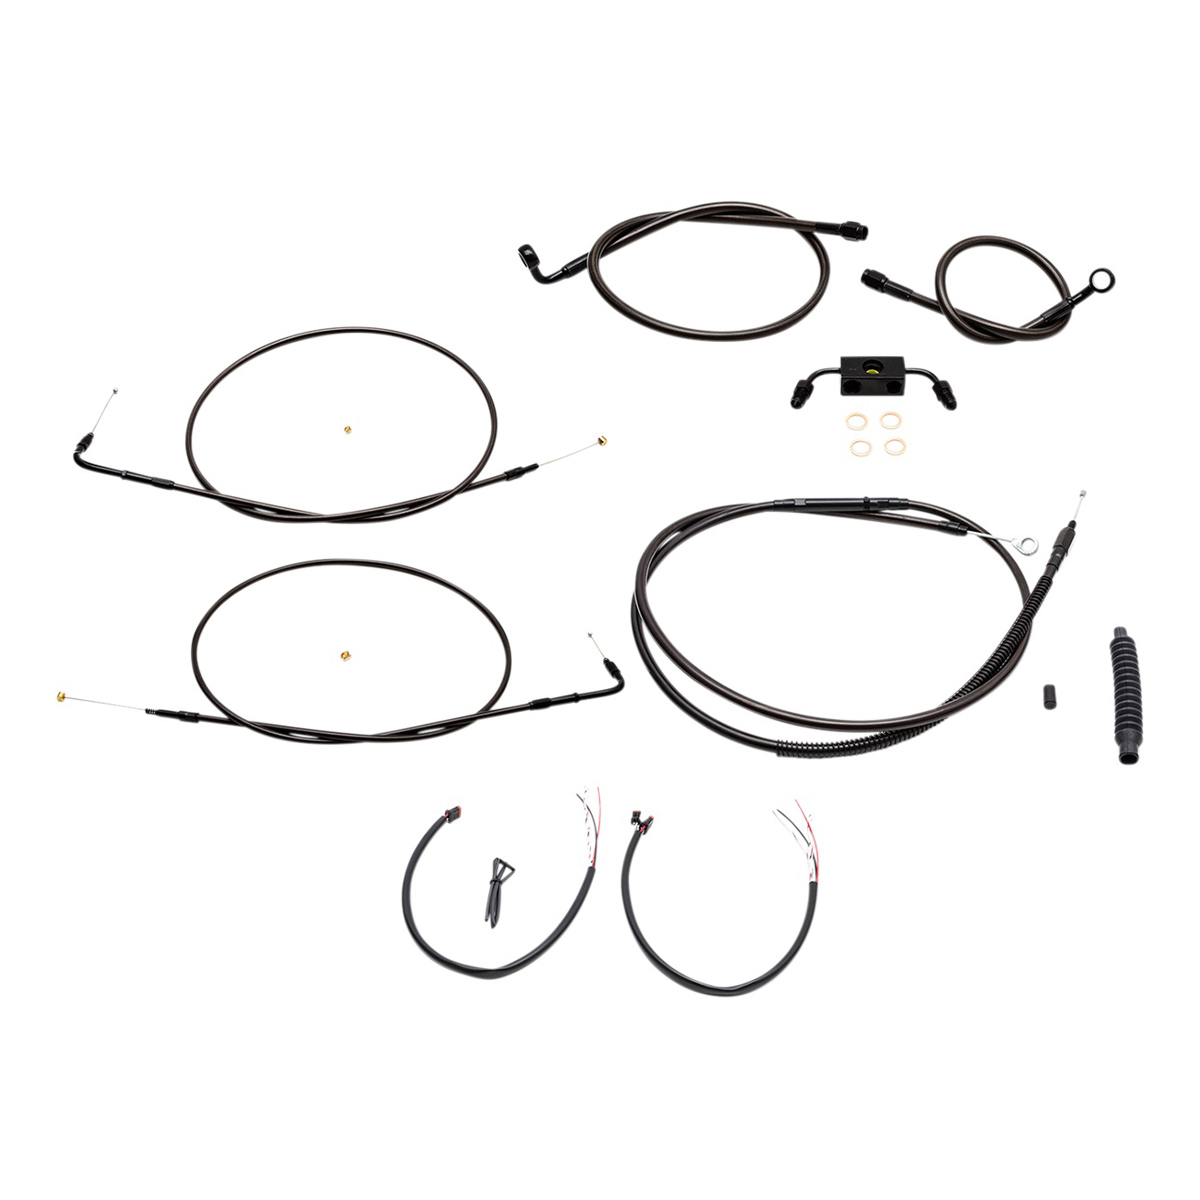 La Choppers Midnight Complete Cable Line Wiring Handlebar Kit For 15 17 Bars On Models With